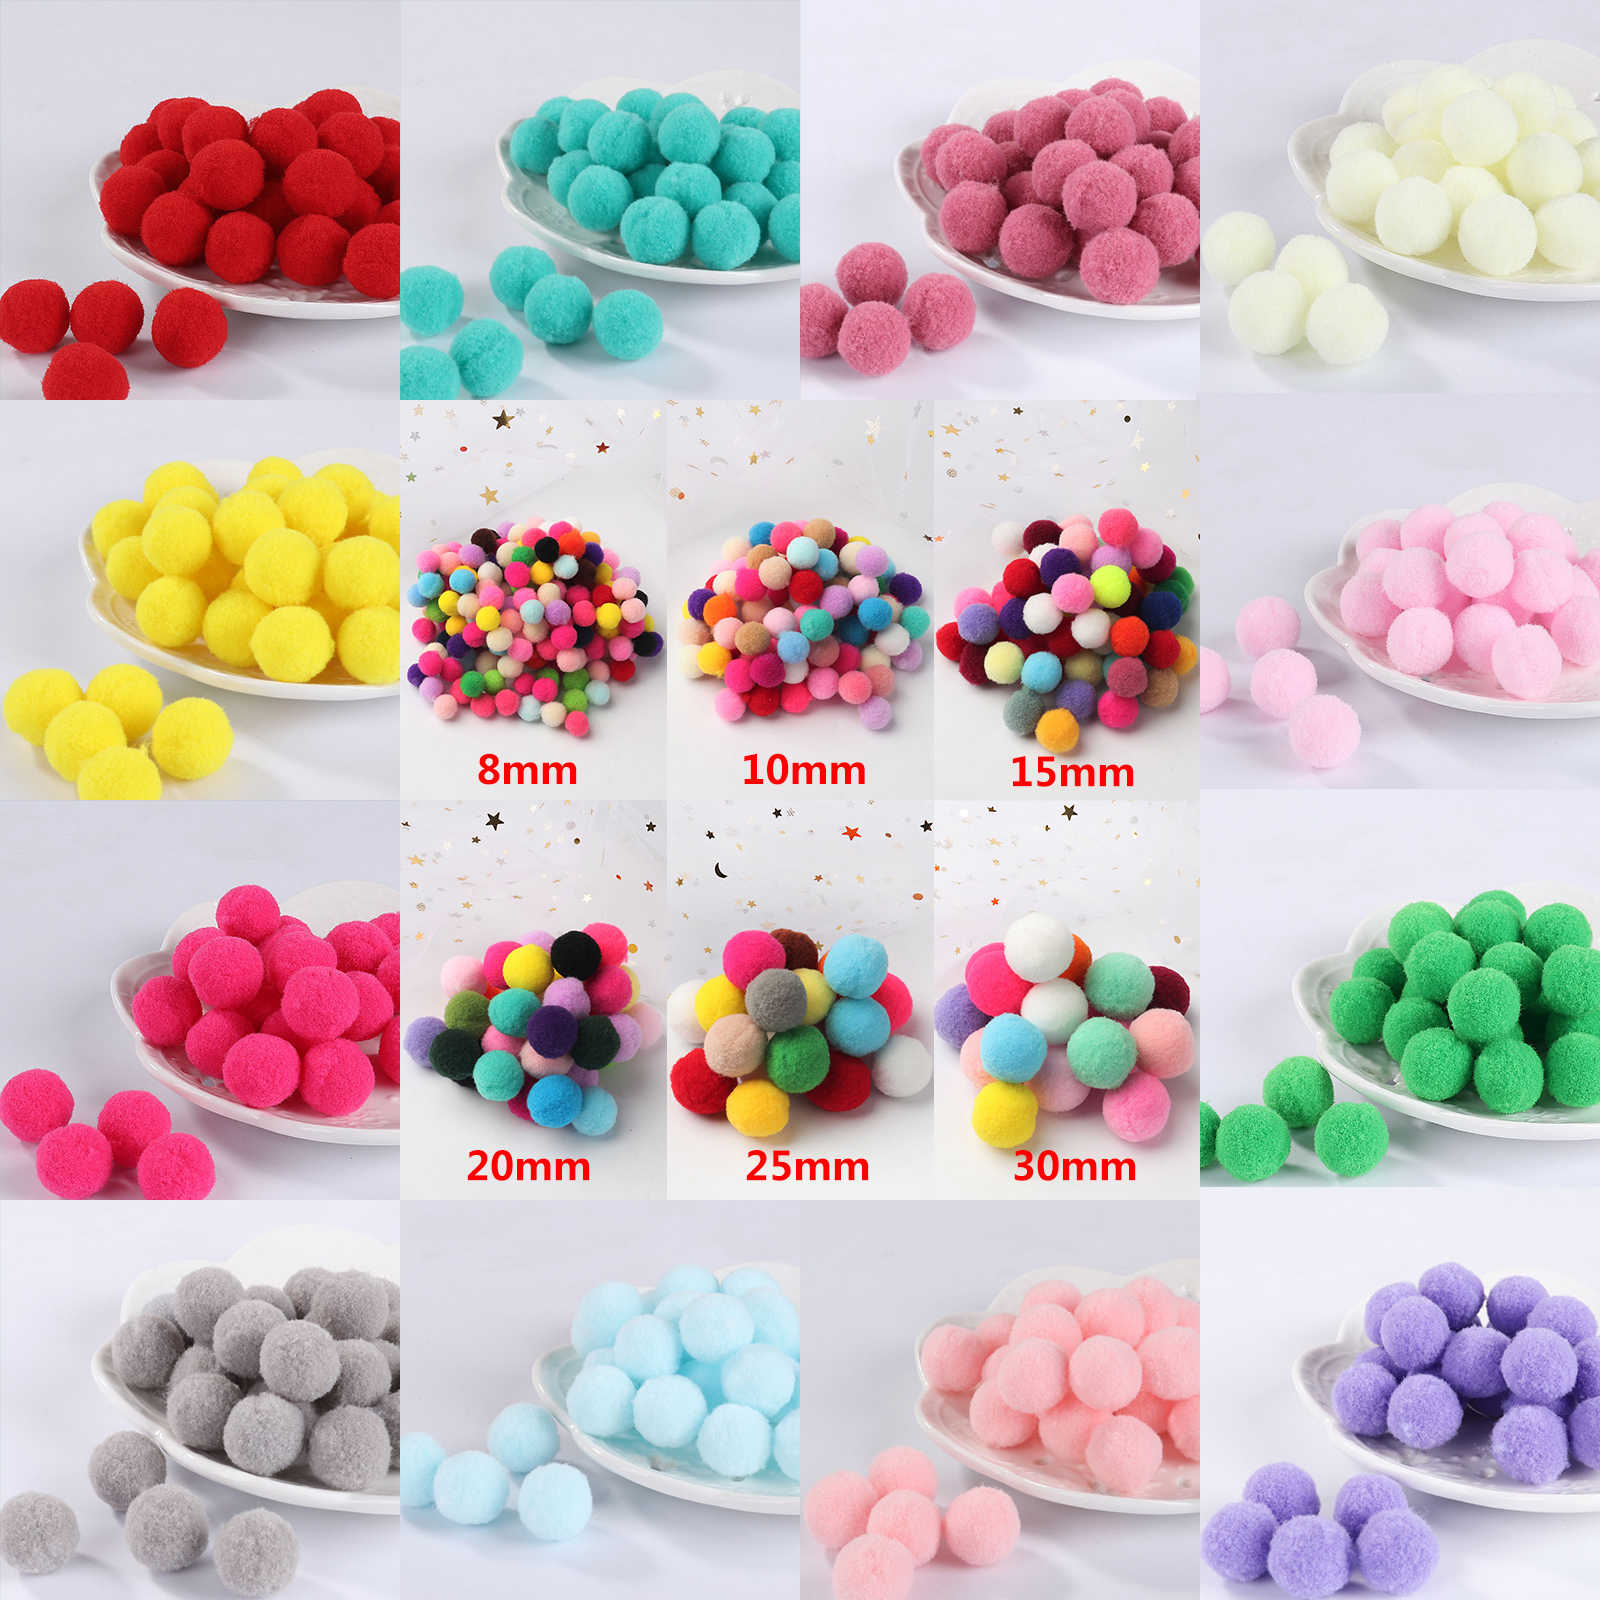 Pompom 8mm 10mm 15mm 20mm 25mm 30mm Soft Pompones Fluffy Plush Crafts DIY Pom Poms Ball Furball Home Decor Sewing Supplies